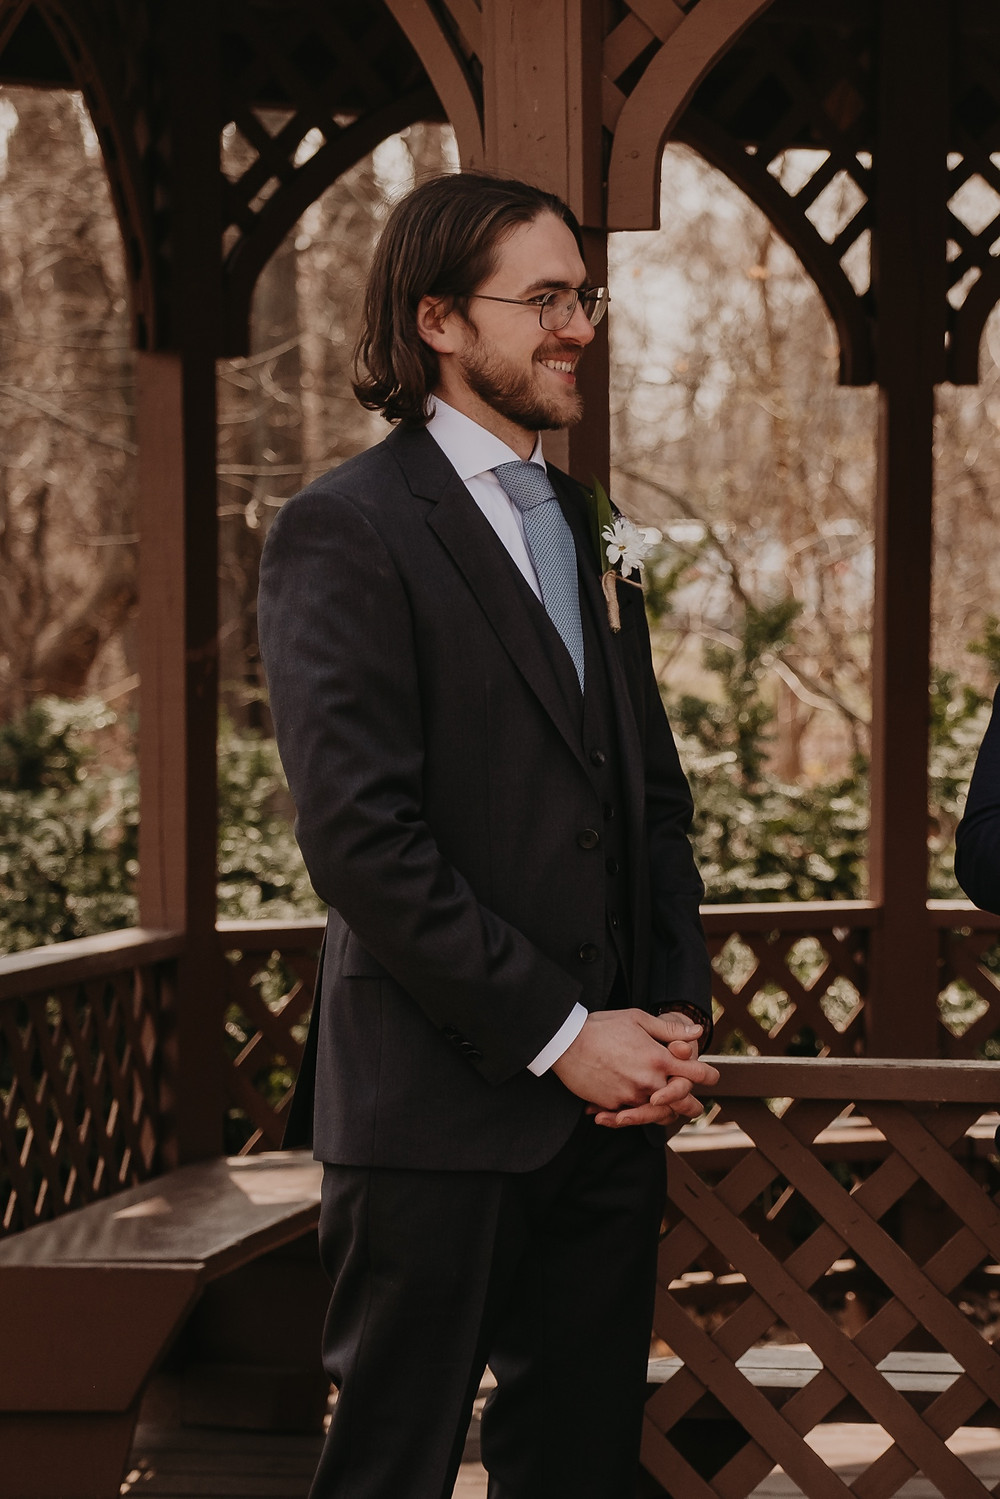 Groom standing at park gazebo on Spring wedding day. Photographed by Nicole Leanne Photography.